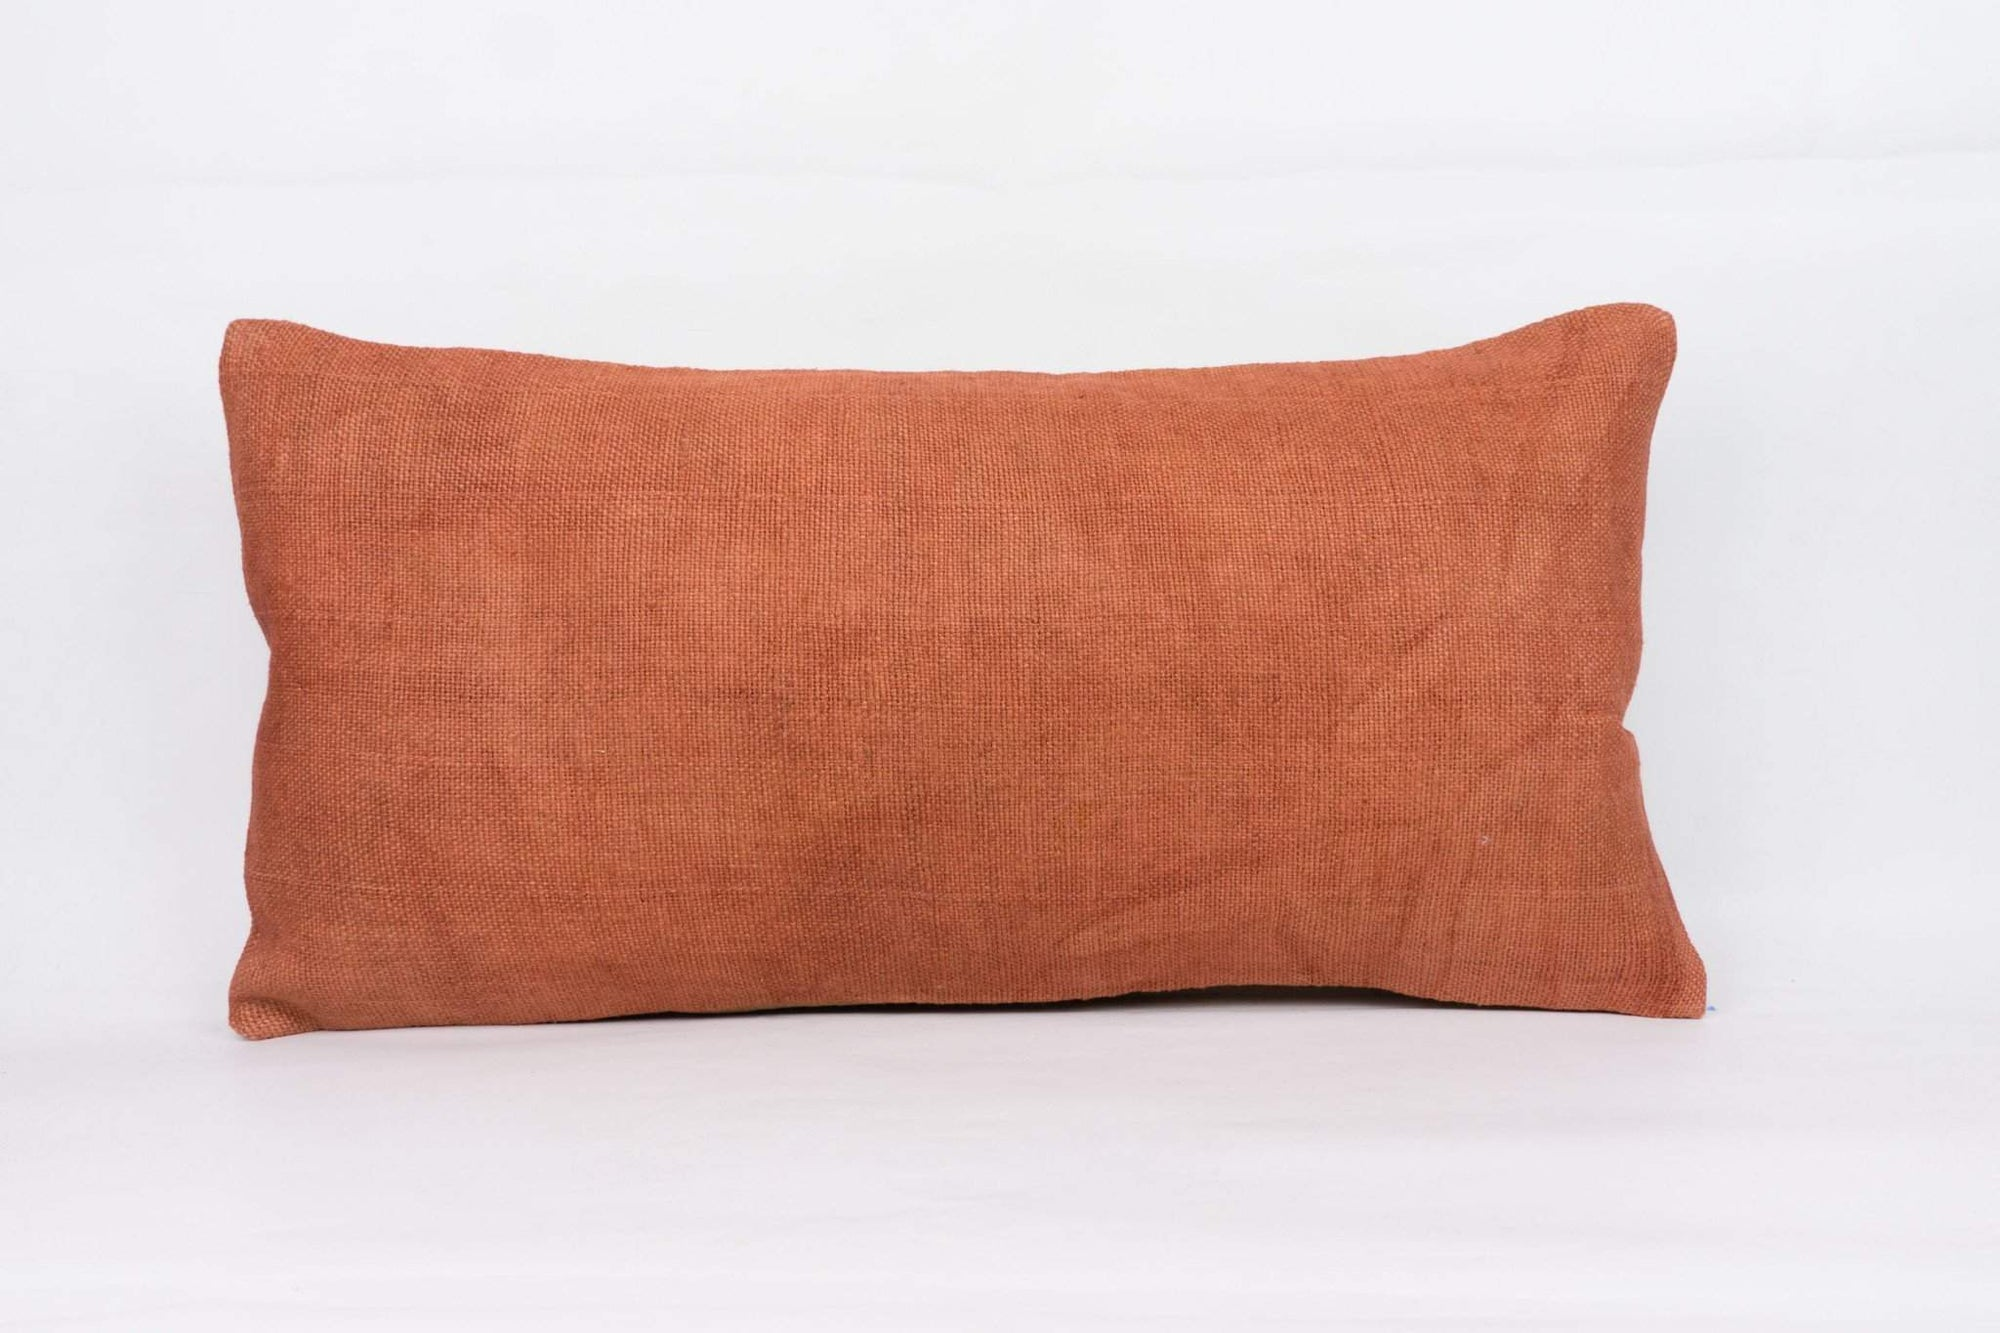 Plain Brown Kilim Pillow Cover 12x24 4178